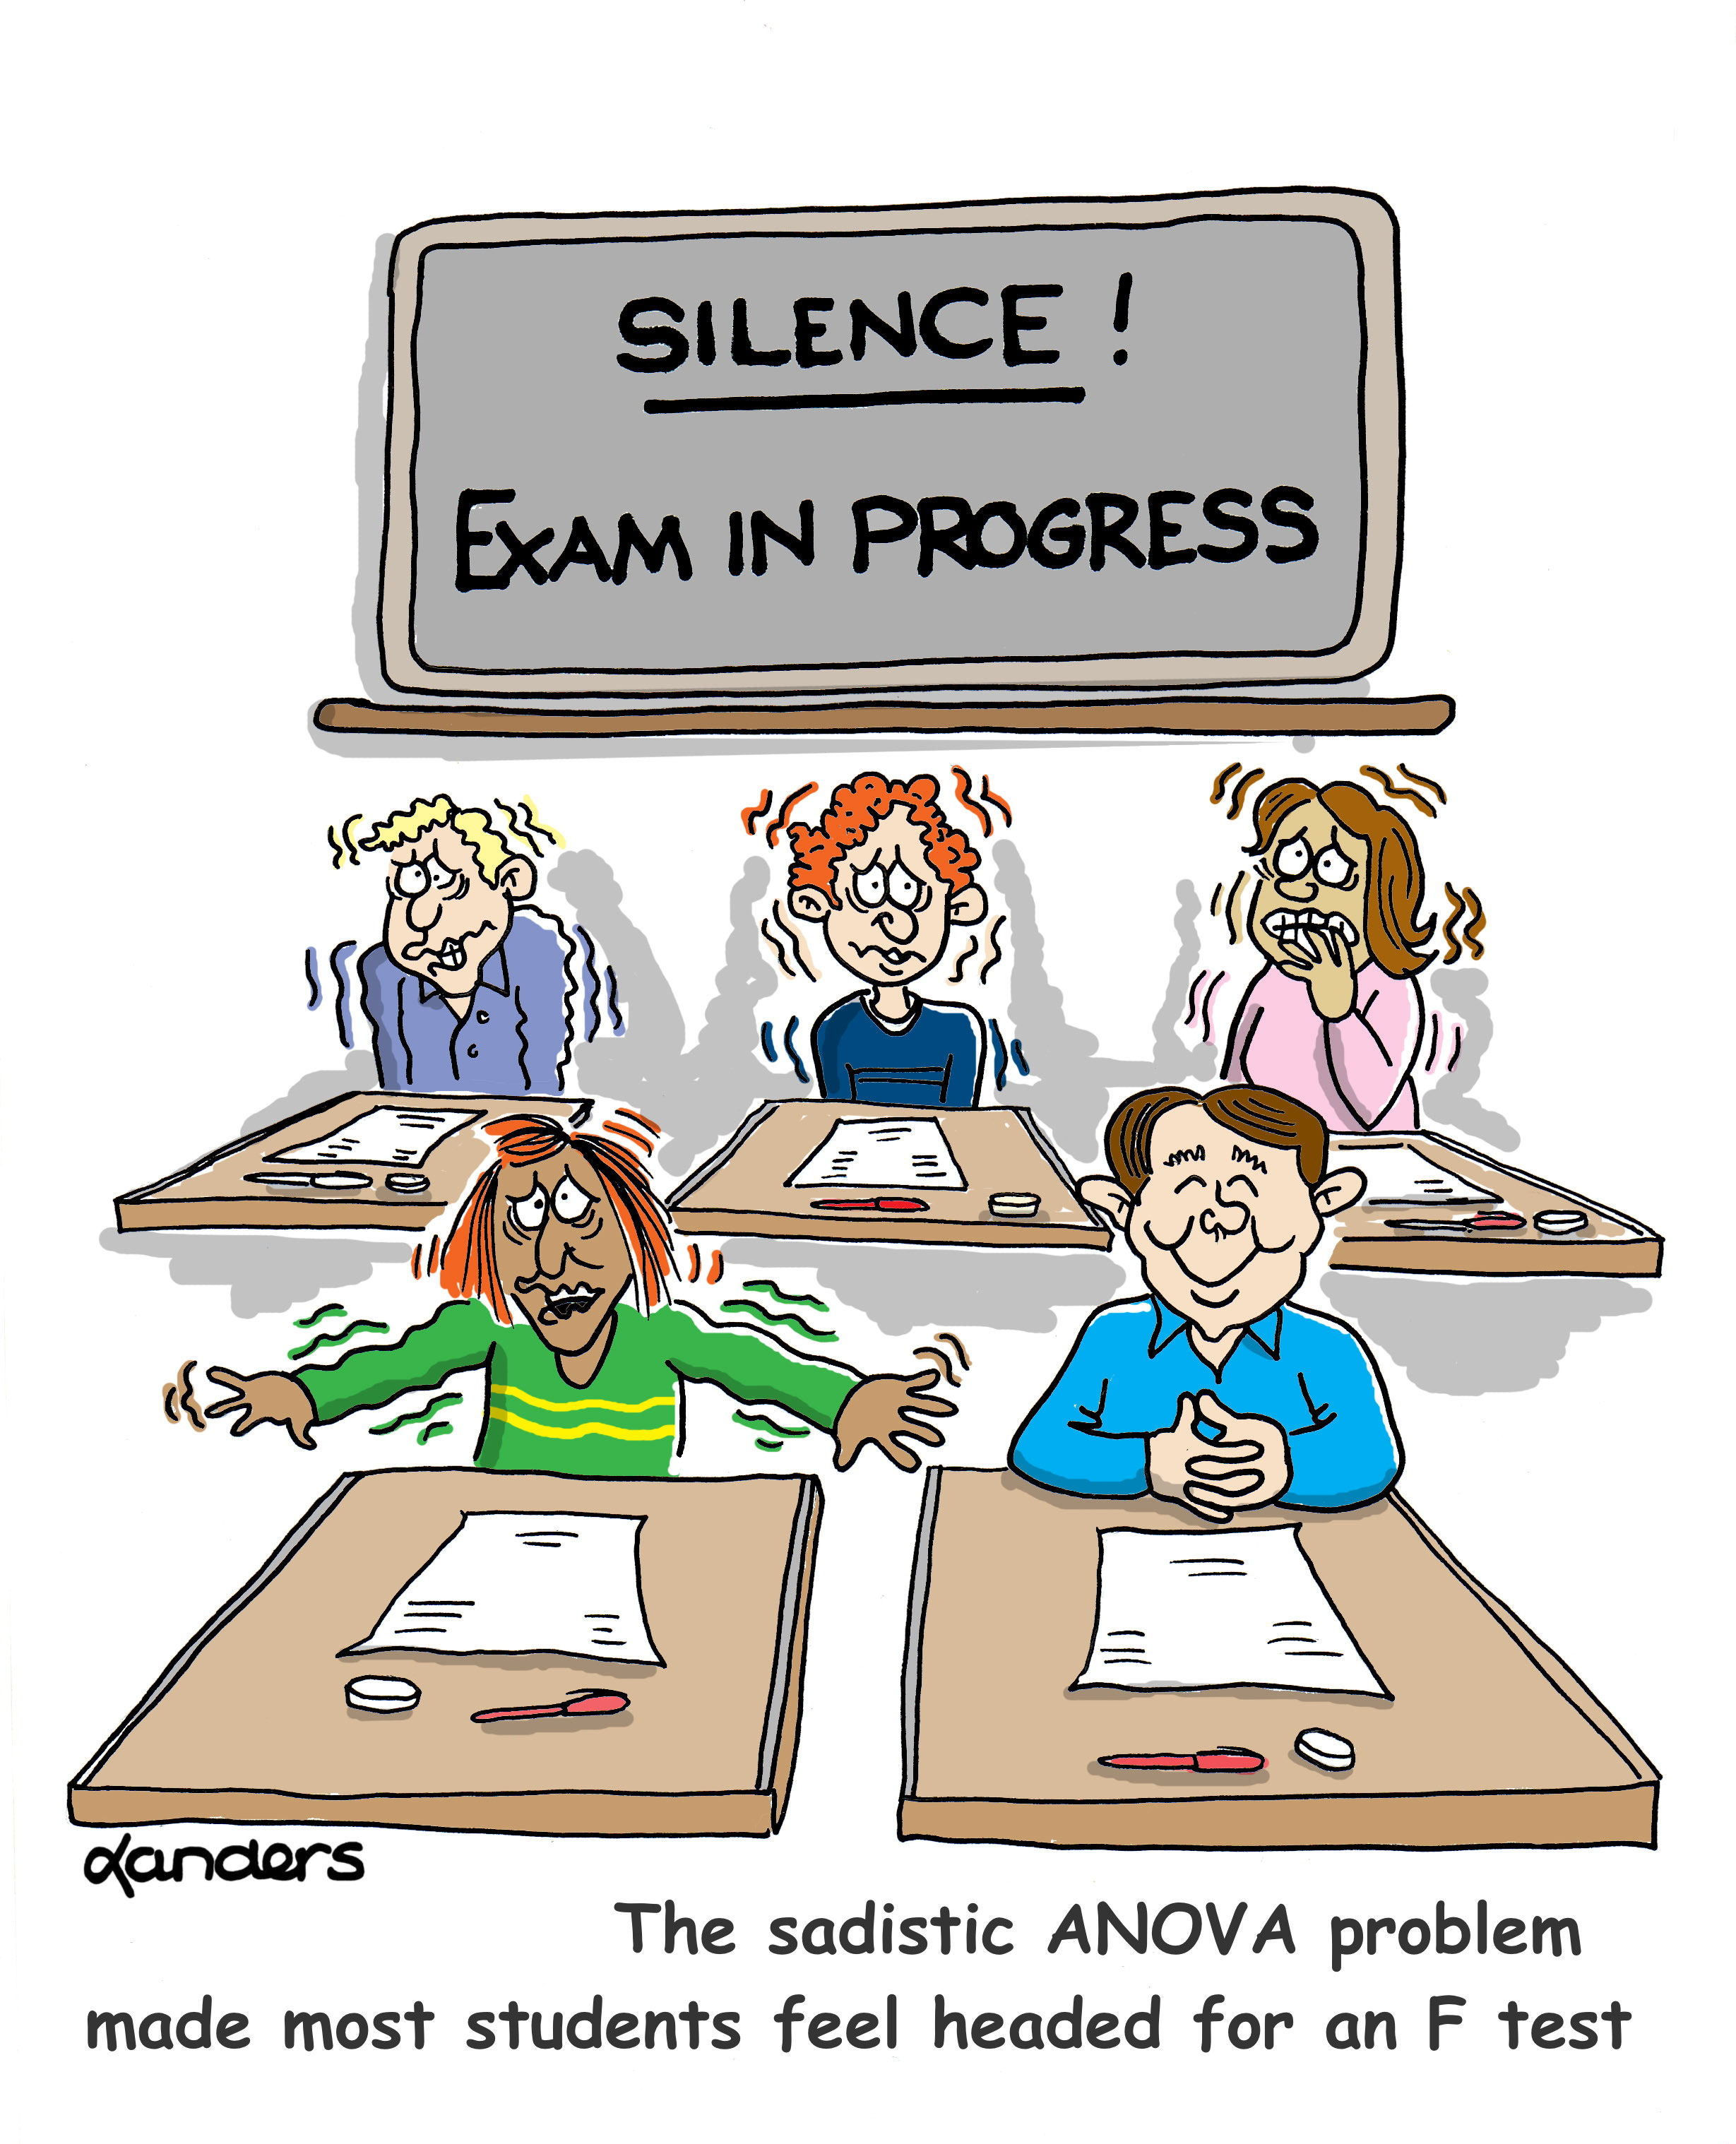 cartoon showing five students taking a test with 4 appearing very anxious and one appearing very calm